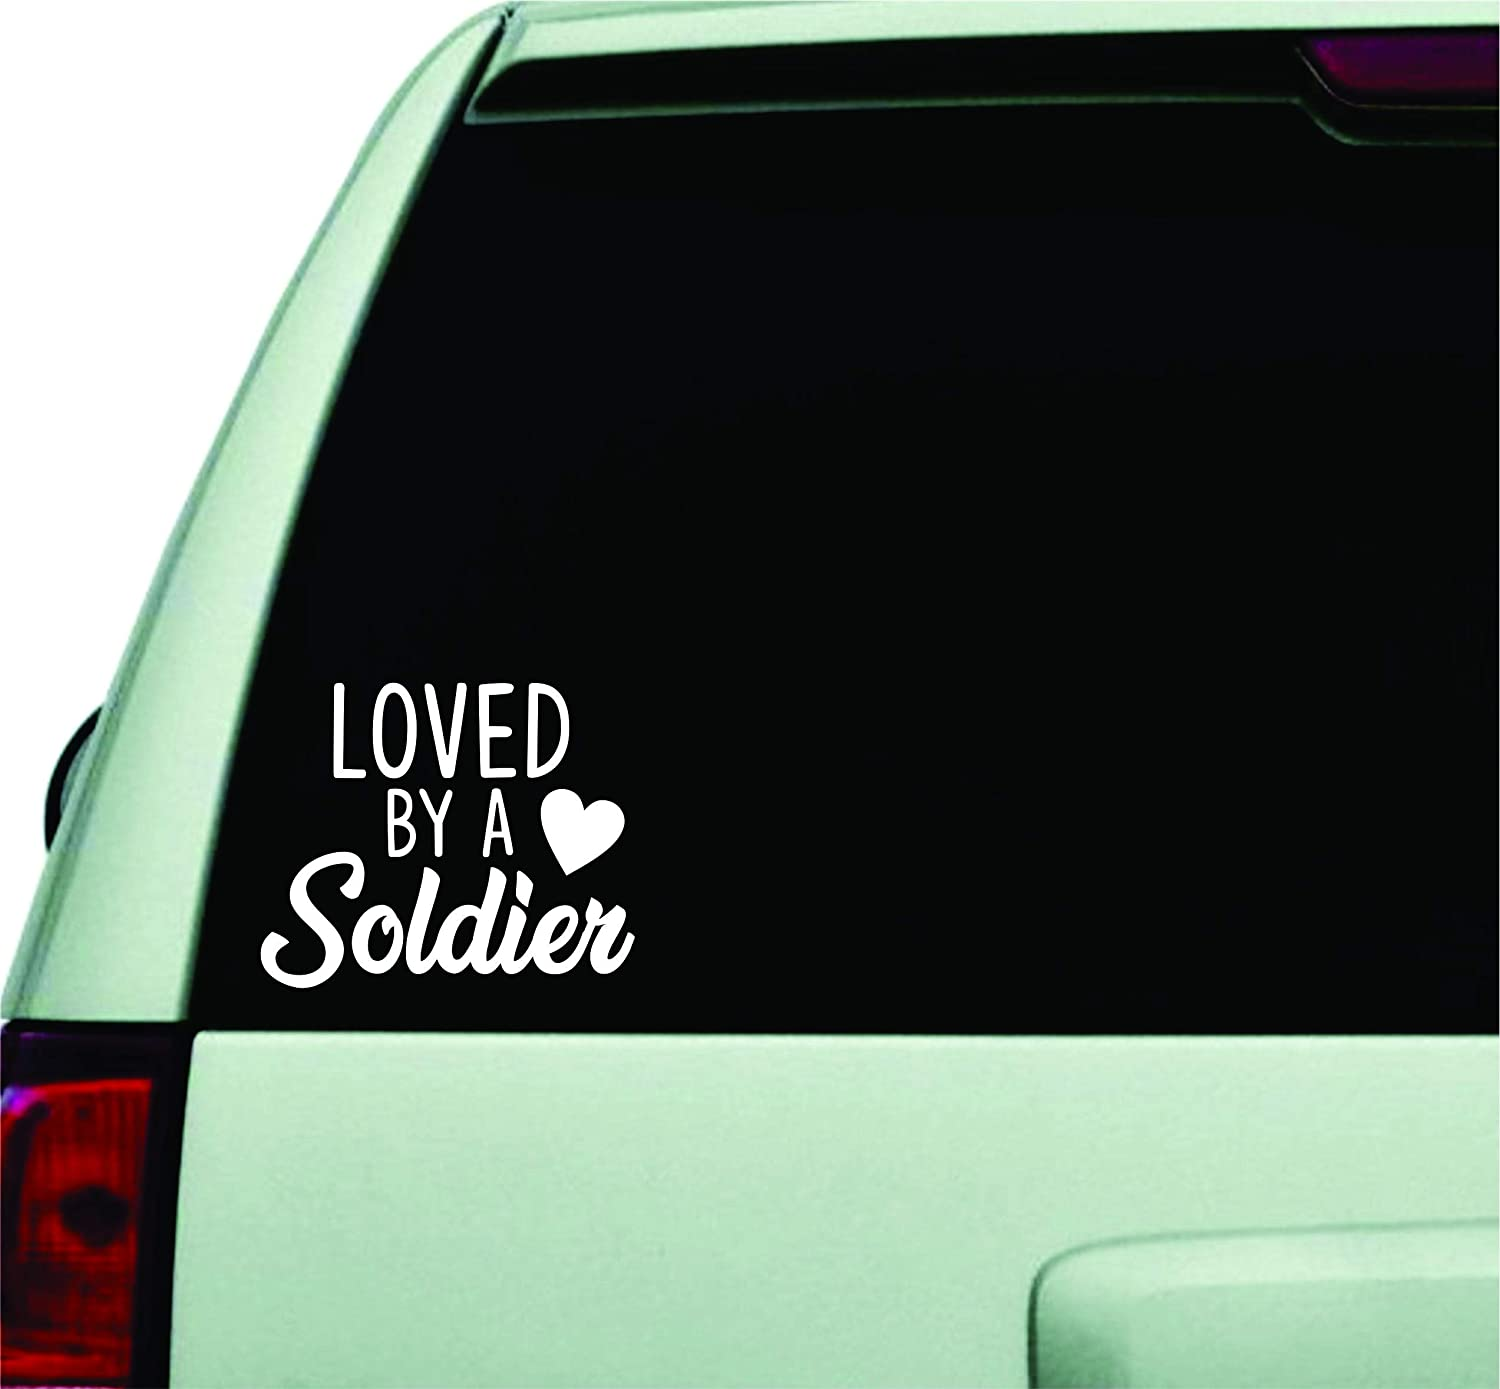 Loved by A Soldier Wall Decal Quote Design Sticker Vinyl Art Words Decor Car Truck JDM Windshield Race Drift Window Boy Girl Teen Love Heart Army Navy Marines Coast Guard US United States Military